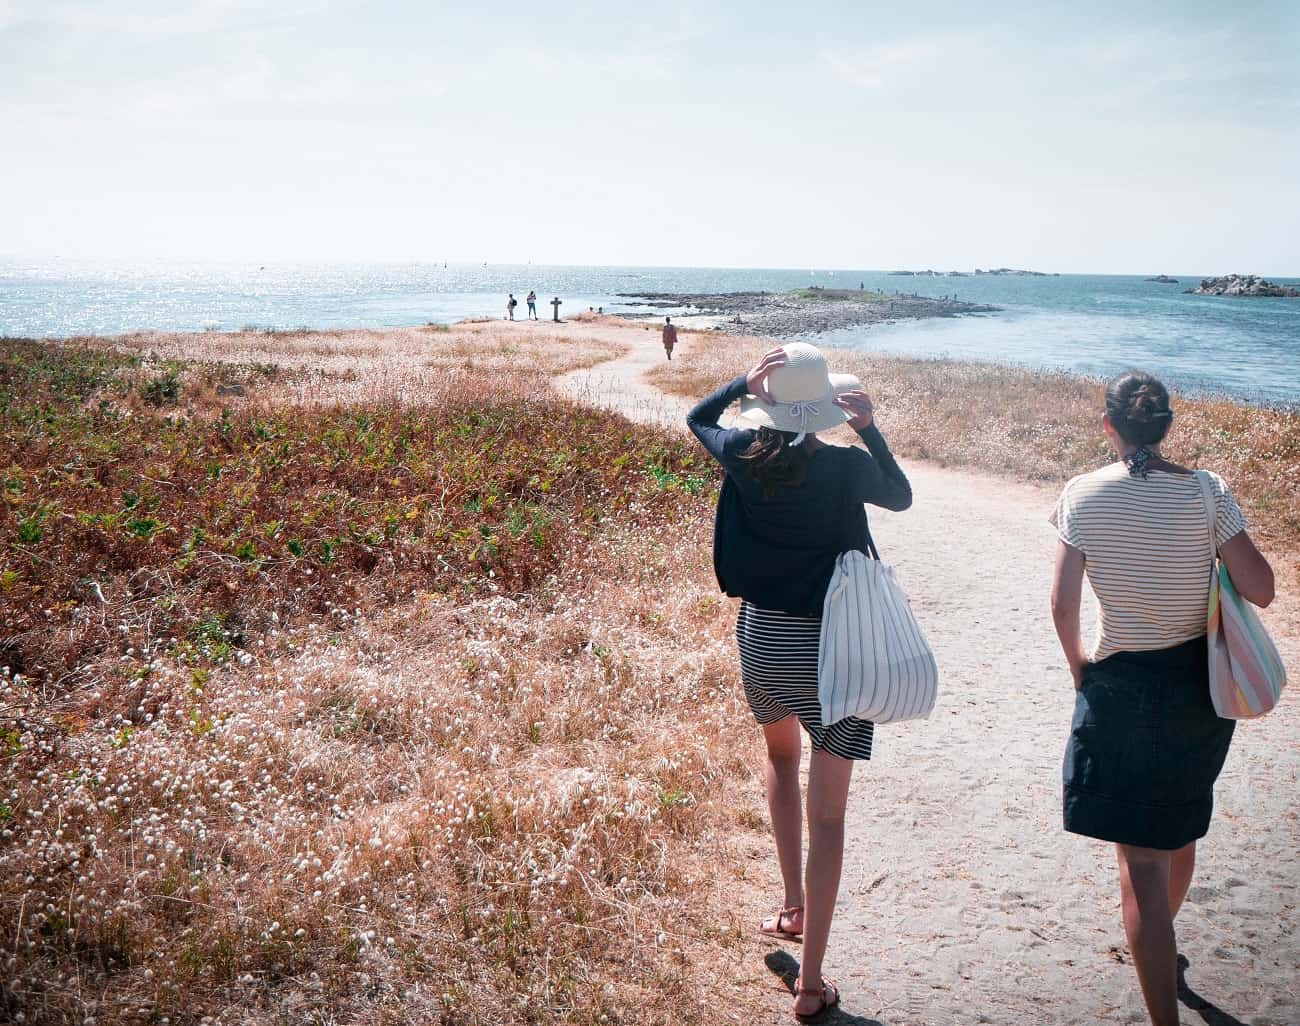 women wearing skirts heading to the beach